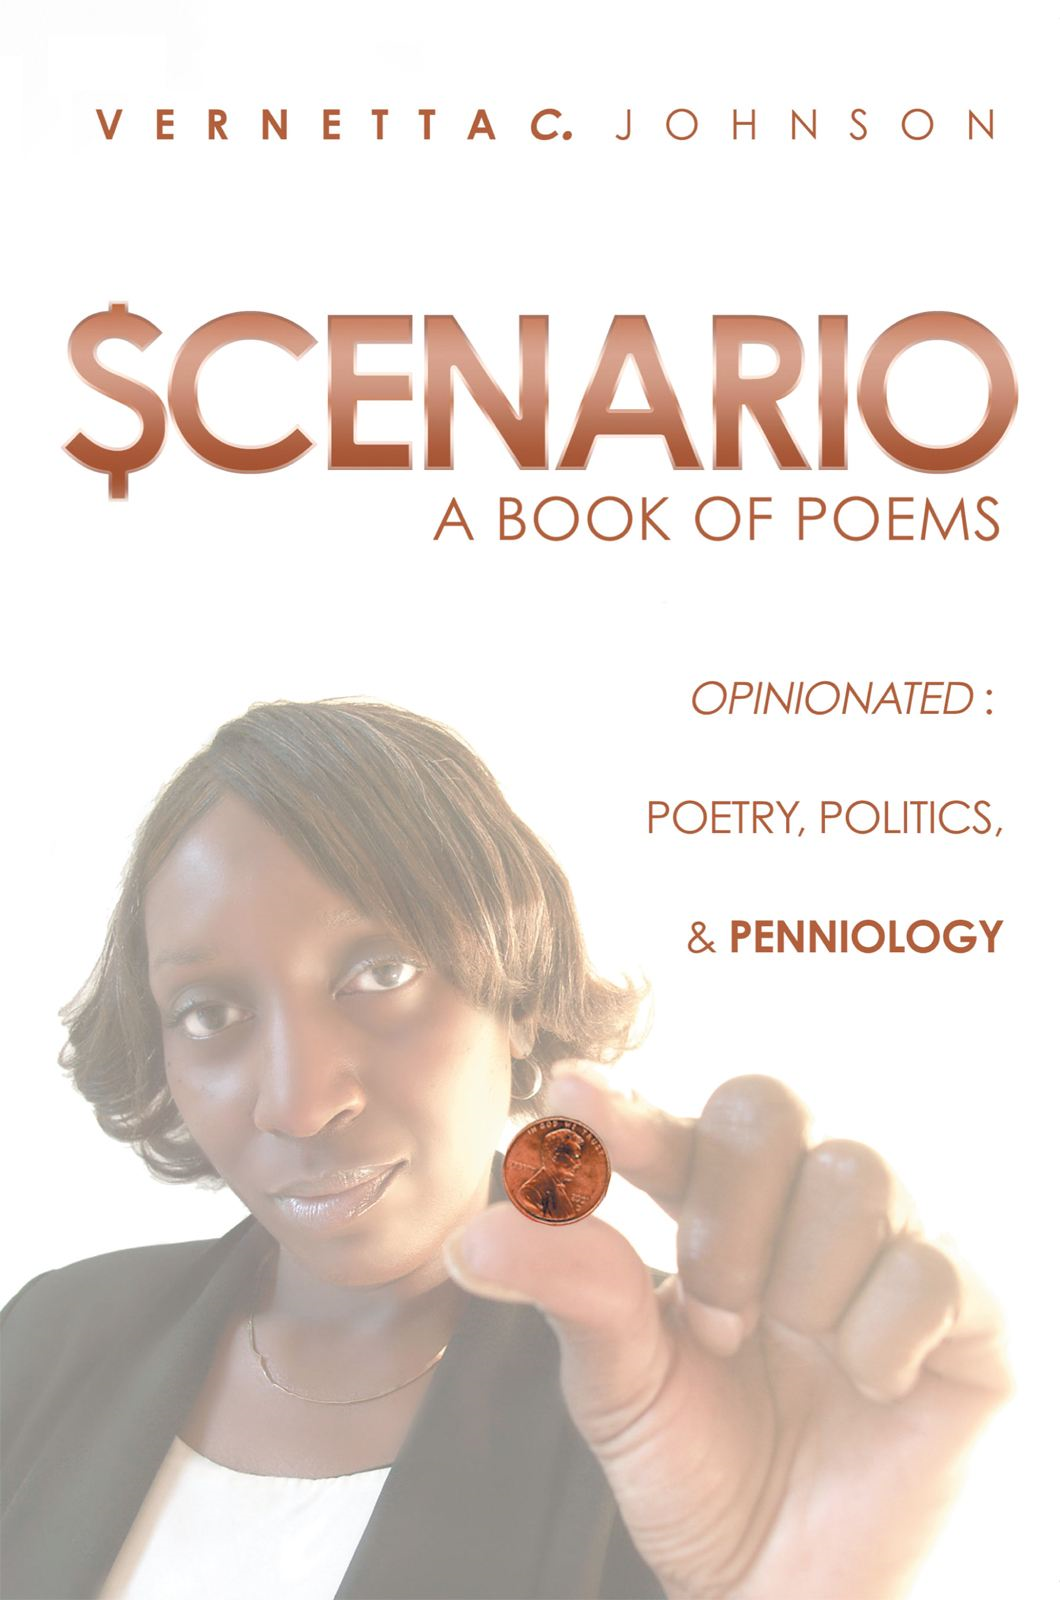 $cenario By: Vernetta C. Johnson